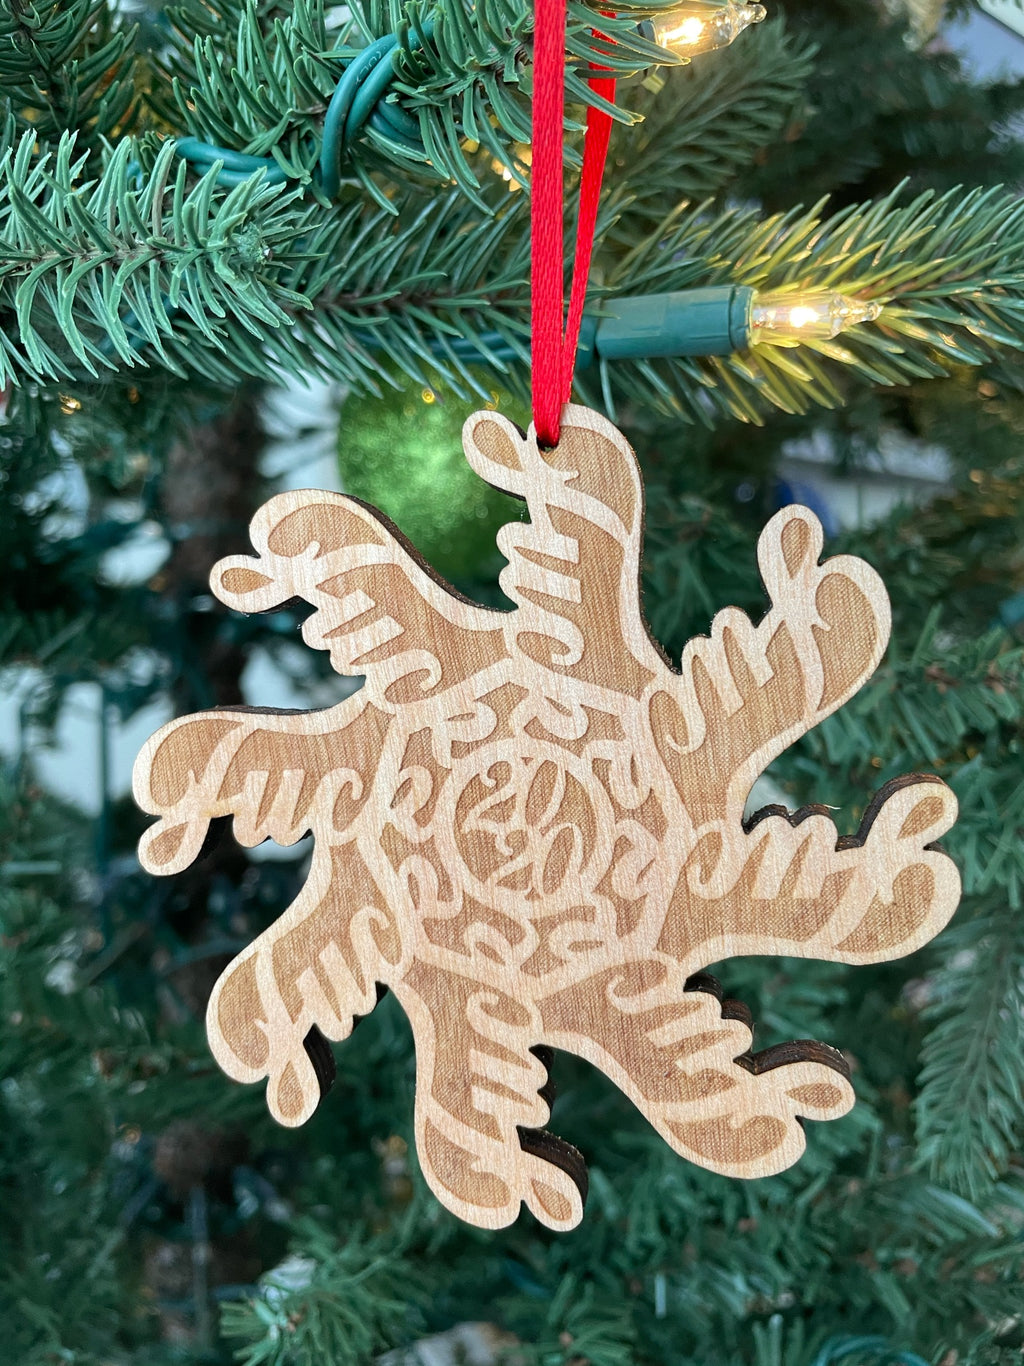 Fuck 2020 Laser Cut Wooden ornament